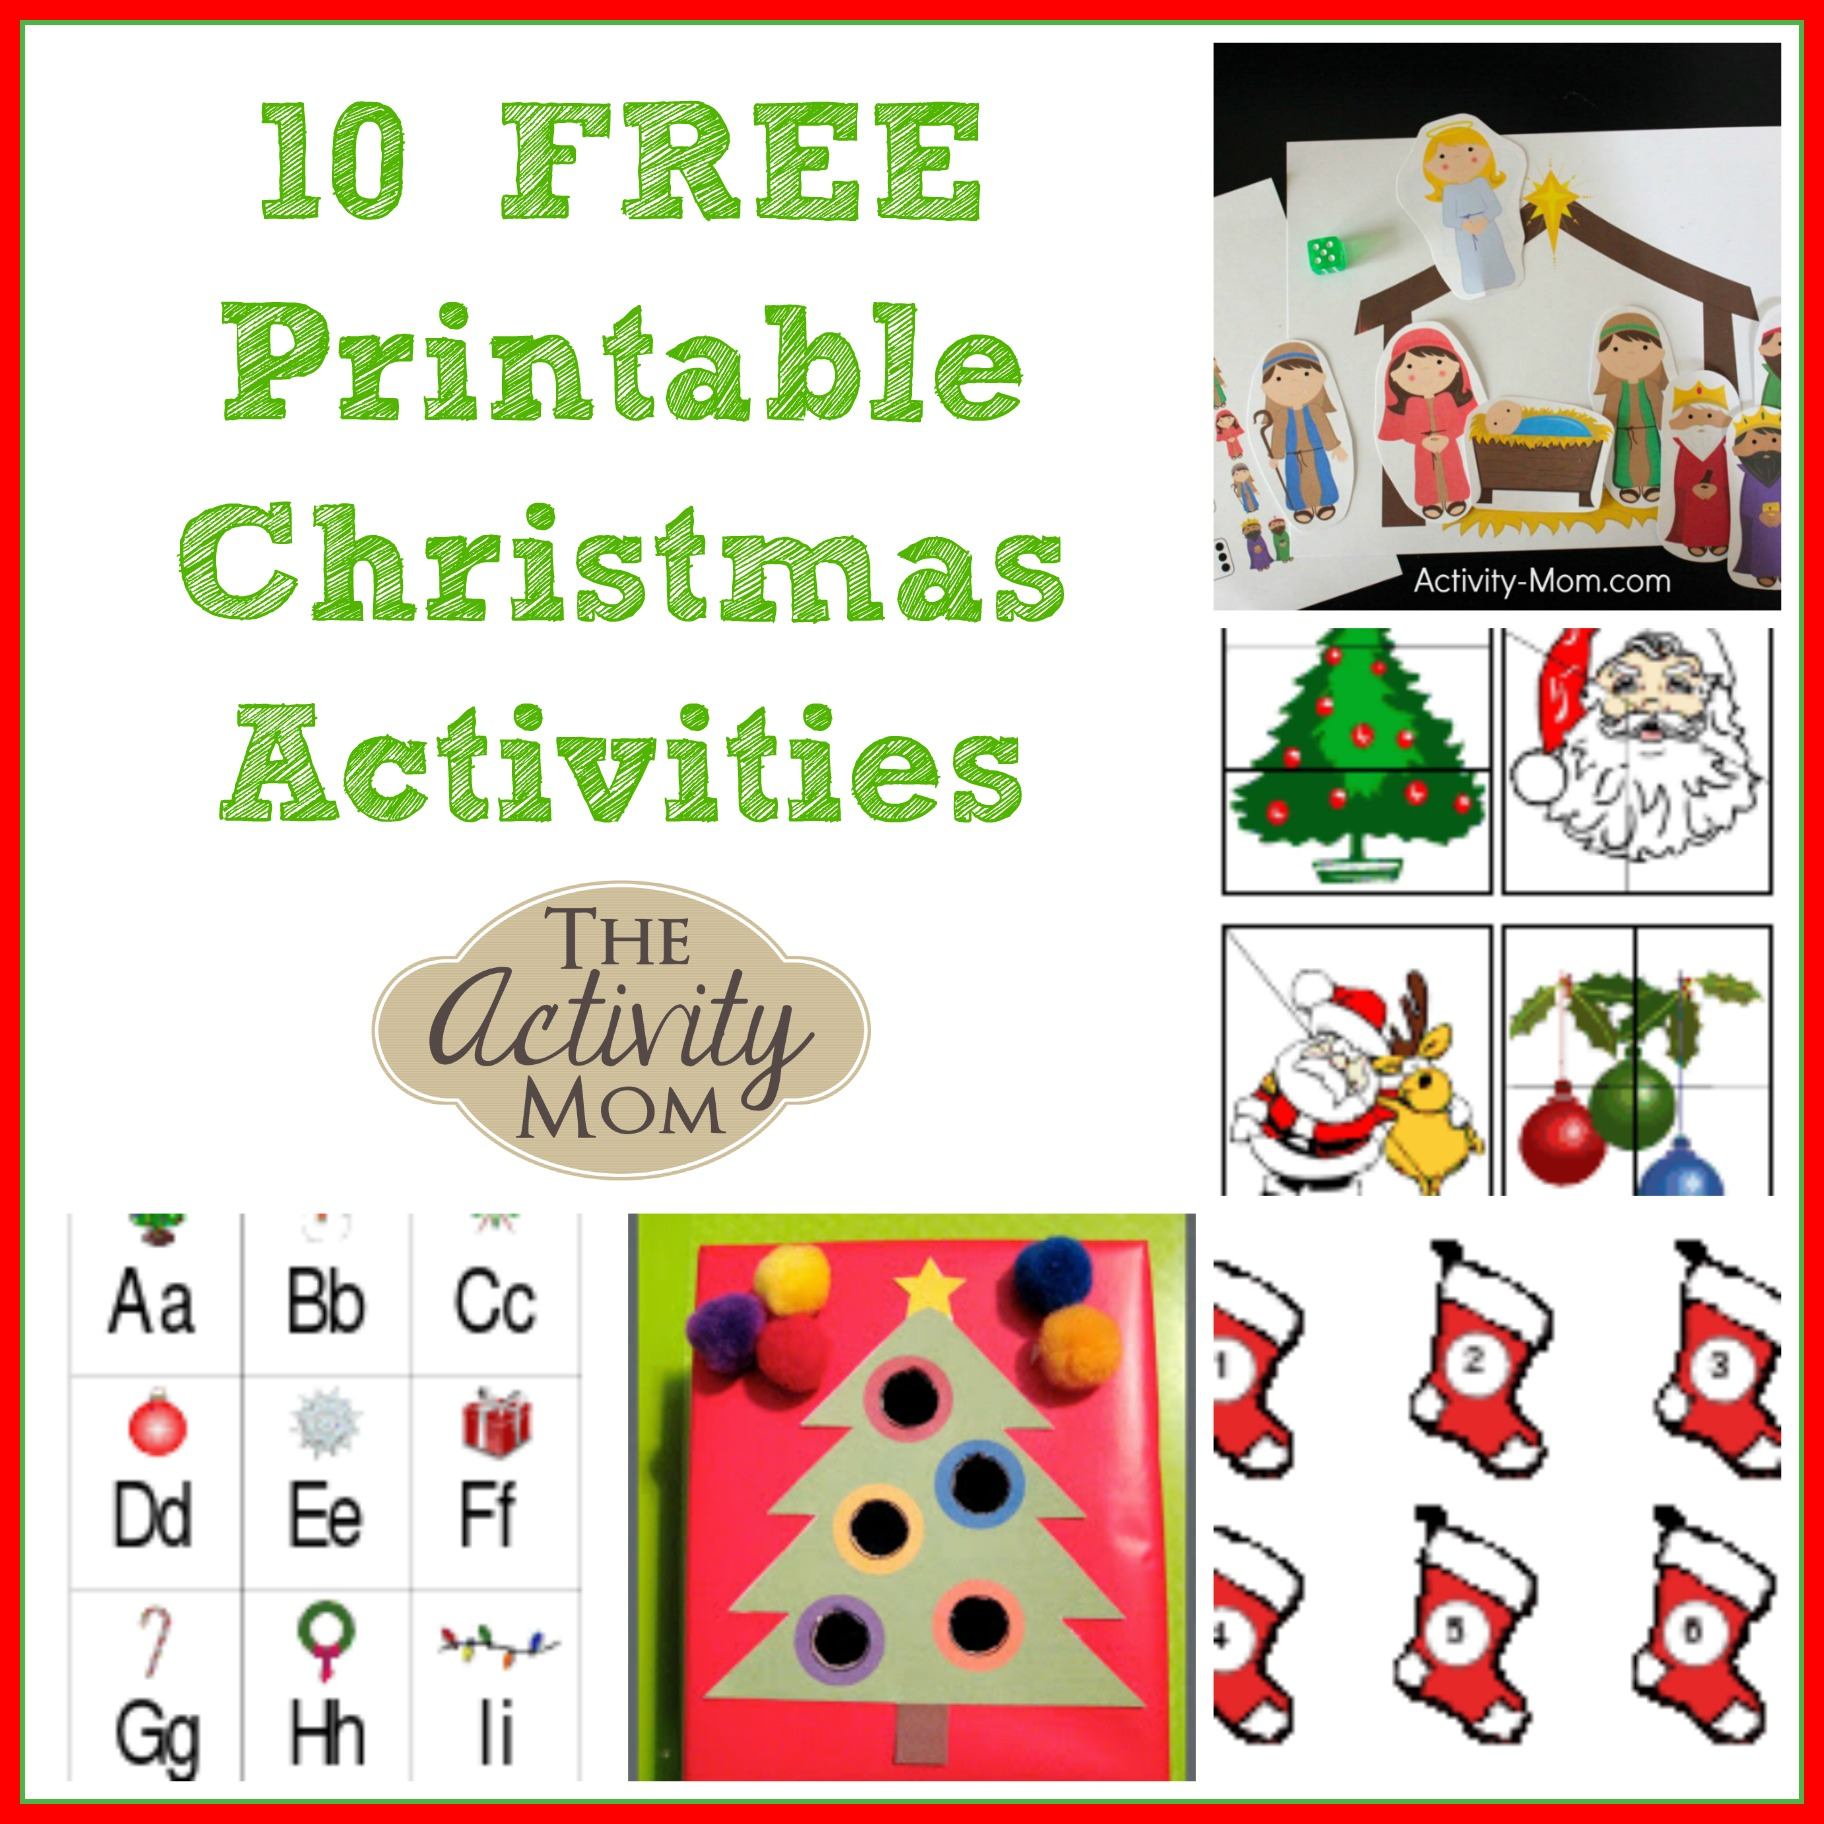 The Activity Mom - 10 Free Printable Christmas Activities - The ...